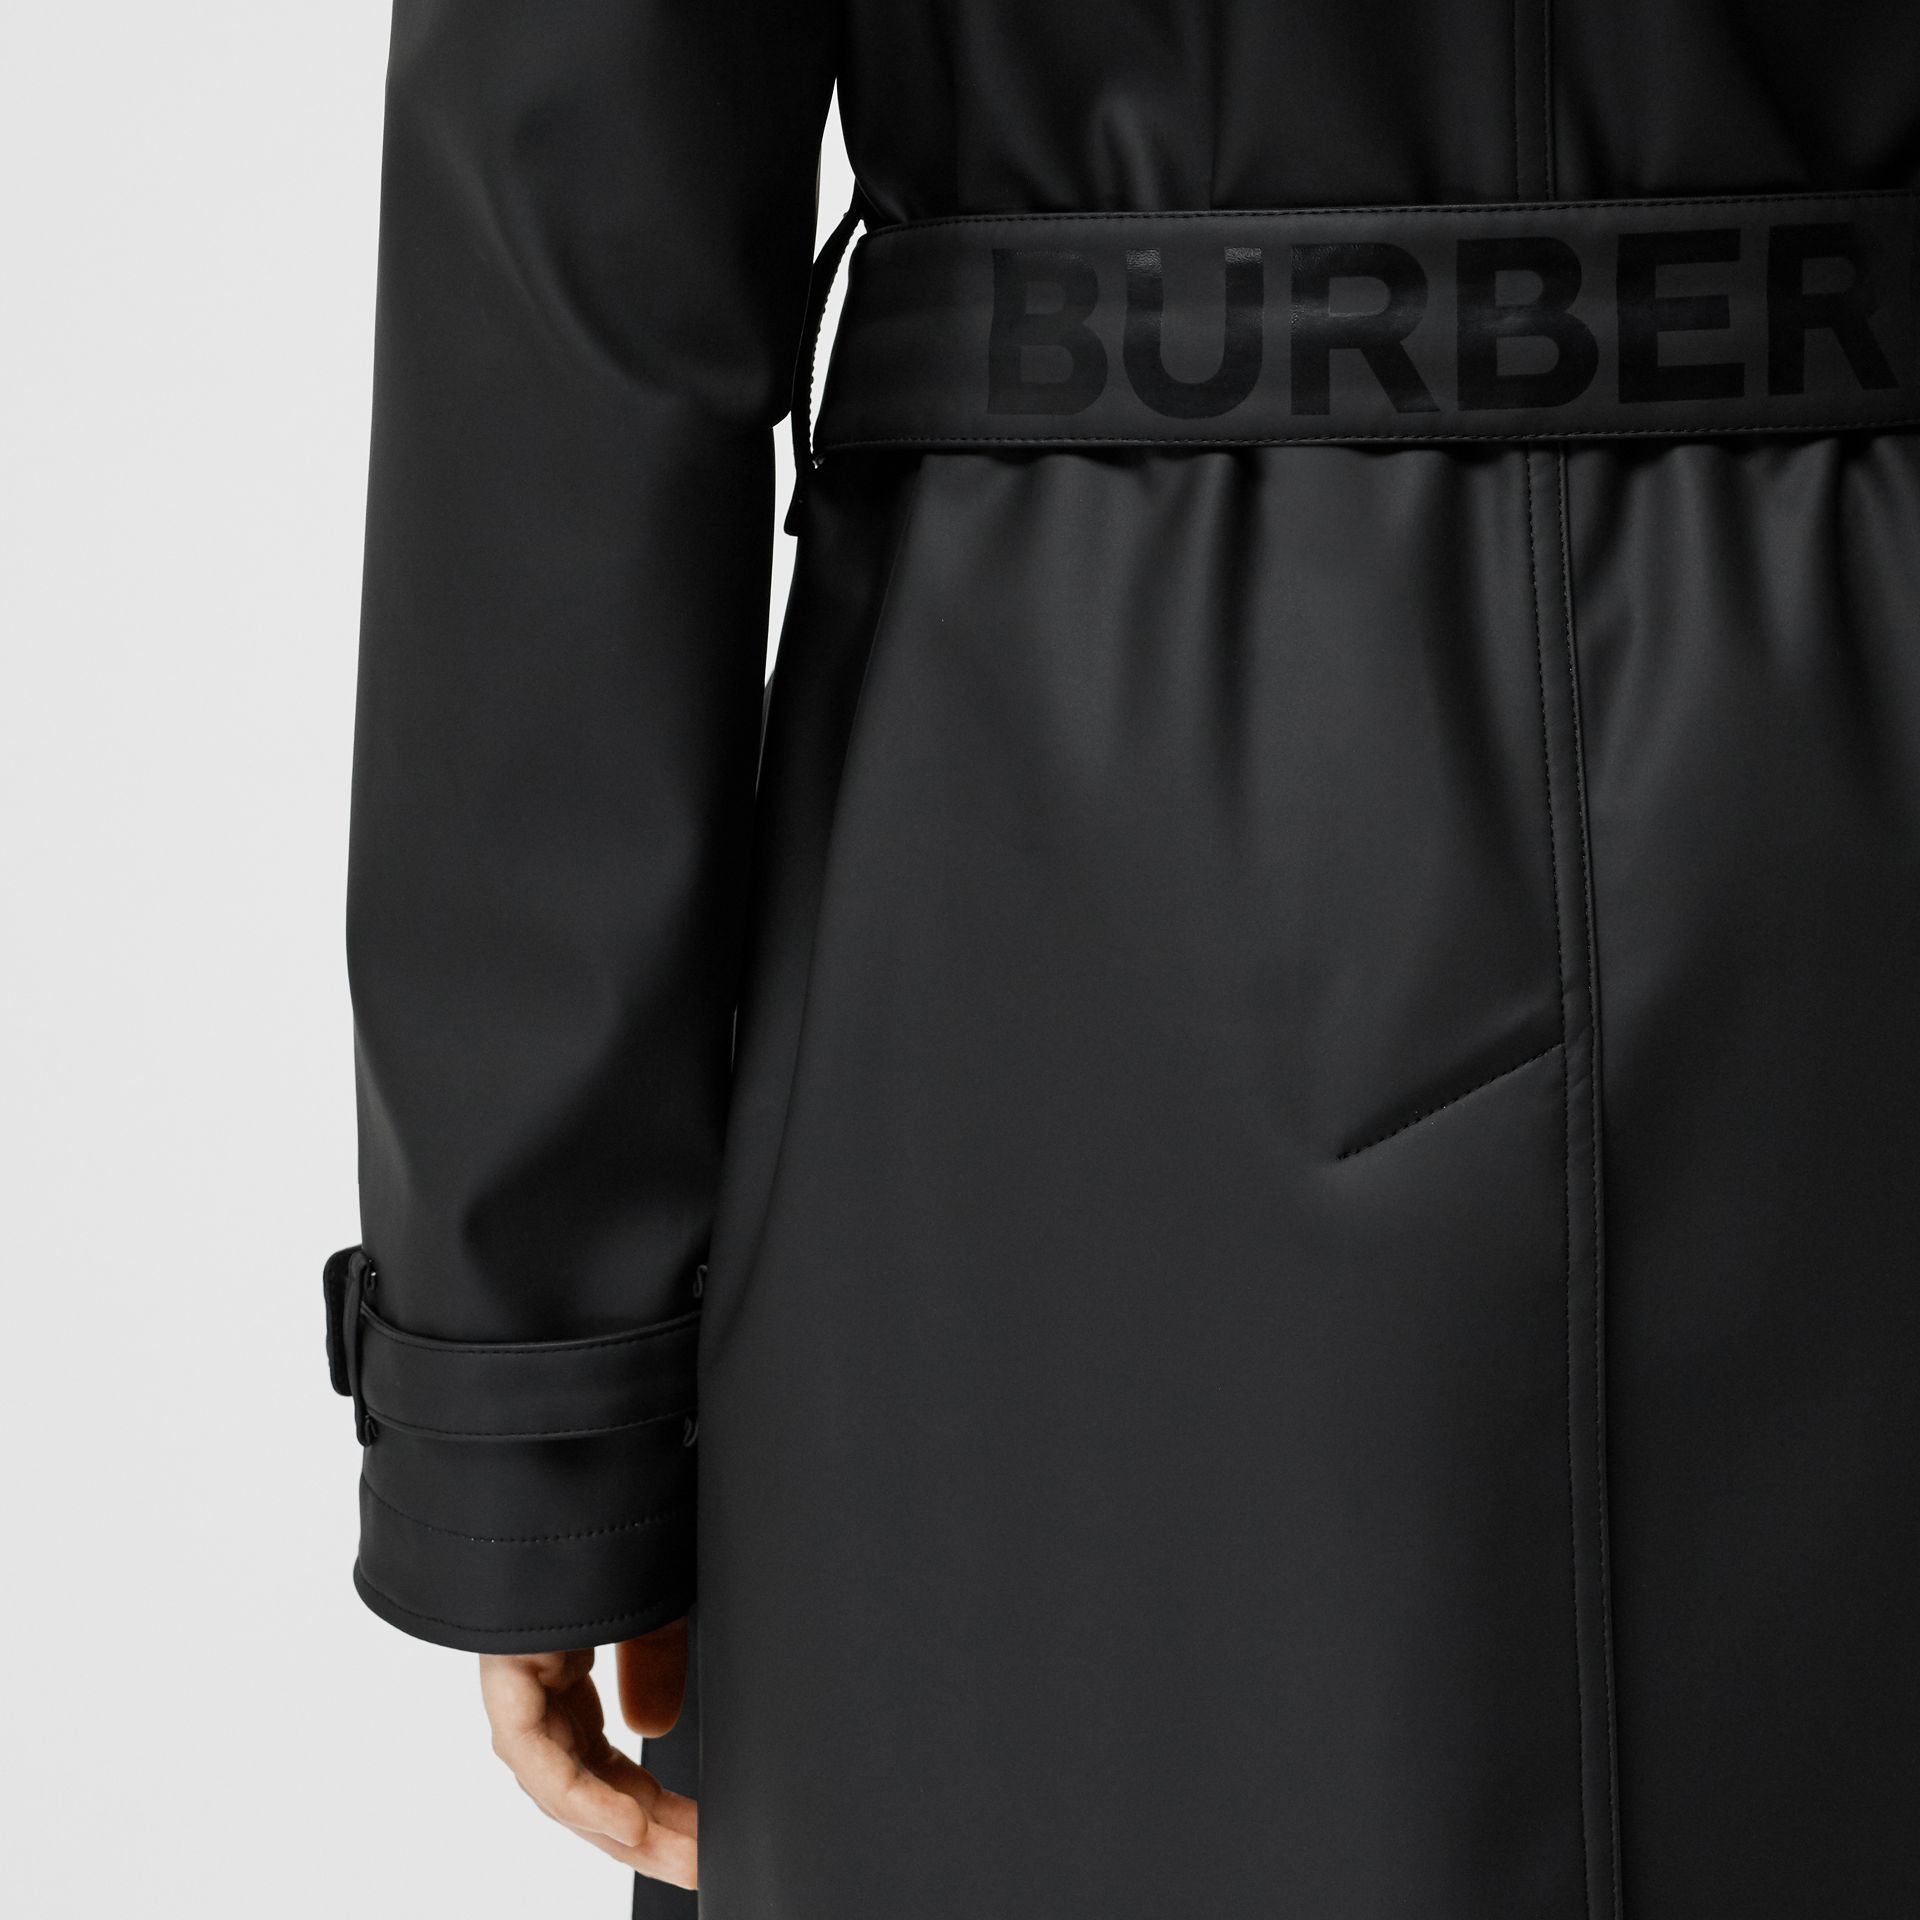 Logo Detail Showerproof Trench Coat in Black/white - Women | Burberry - gallery image 6